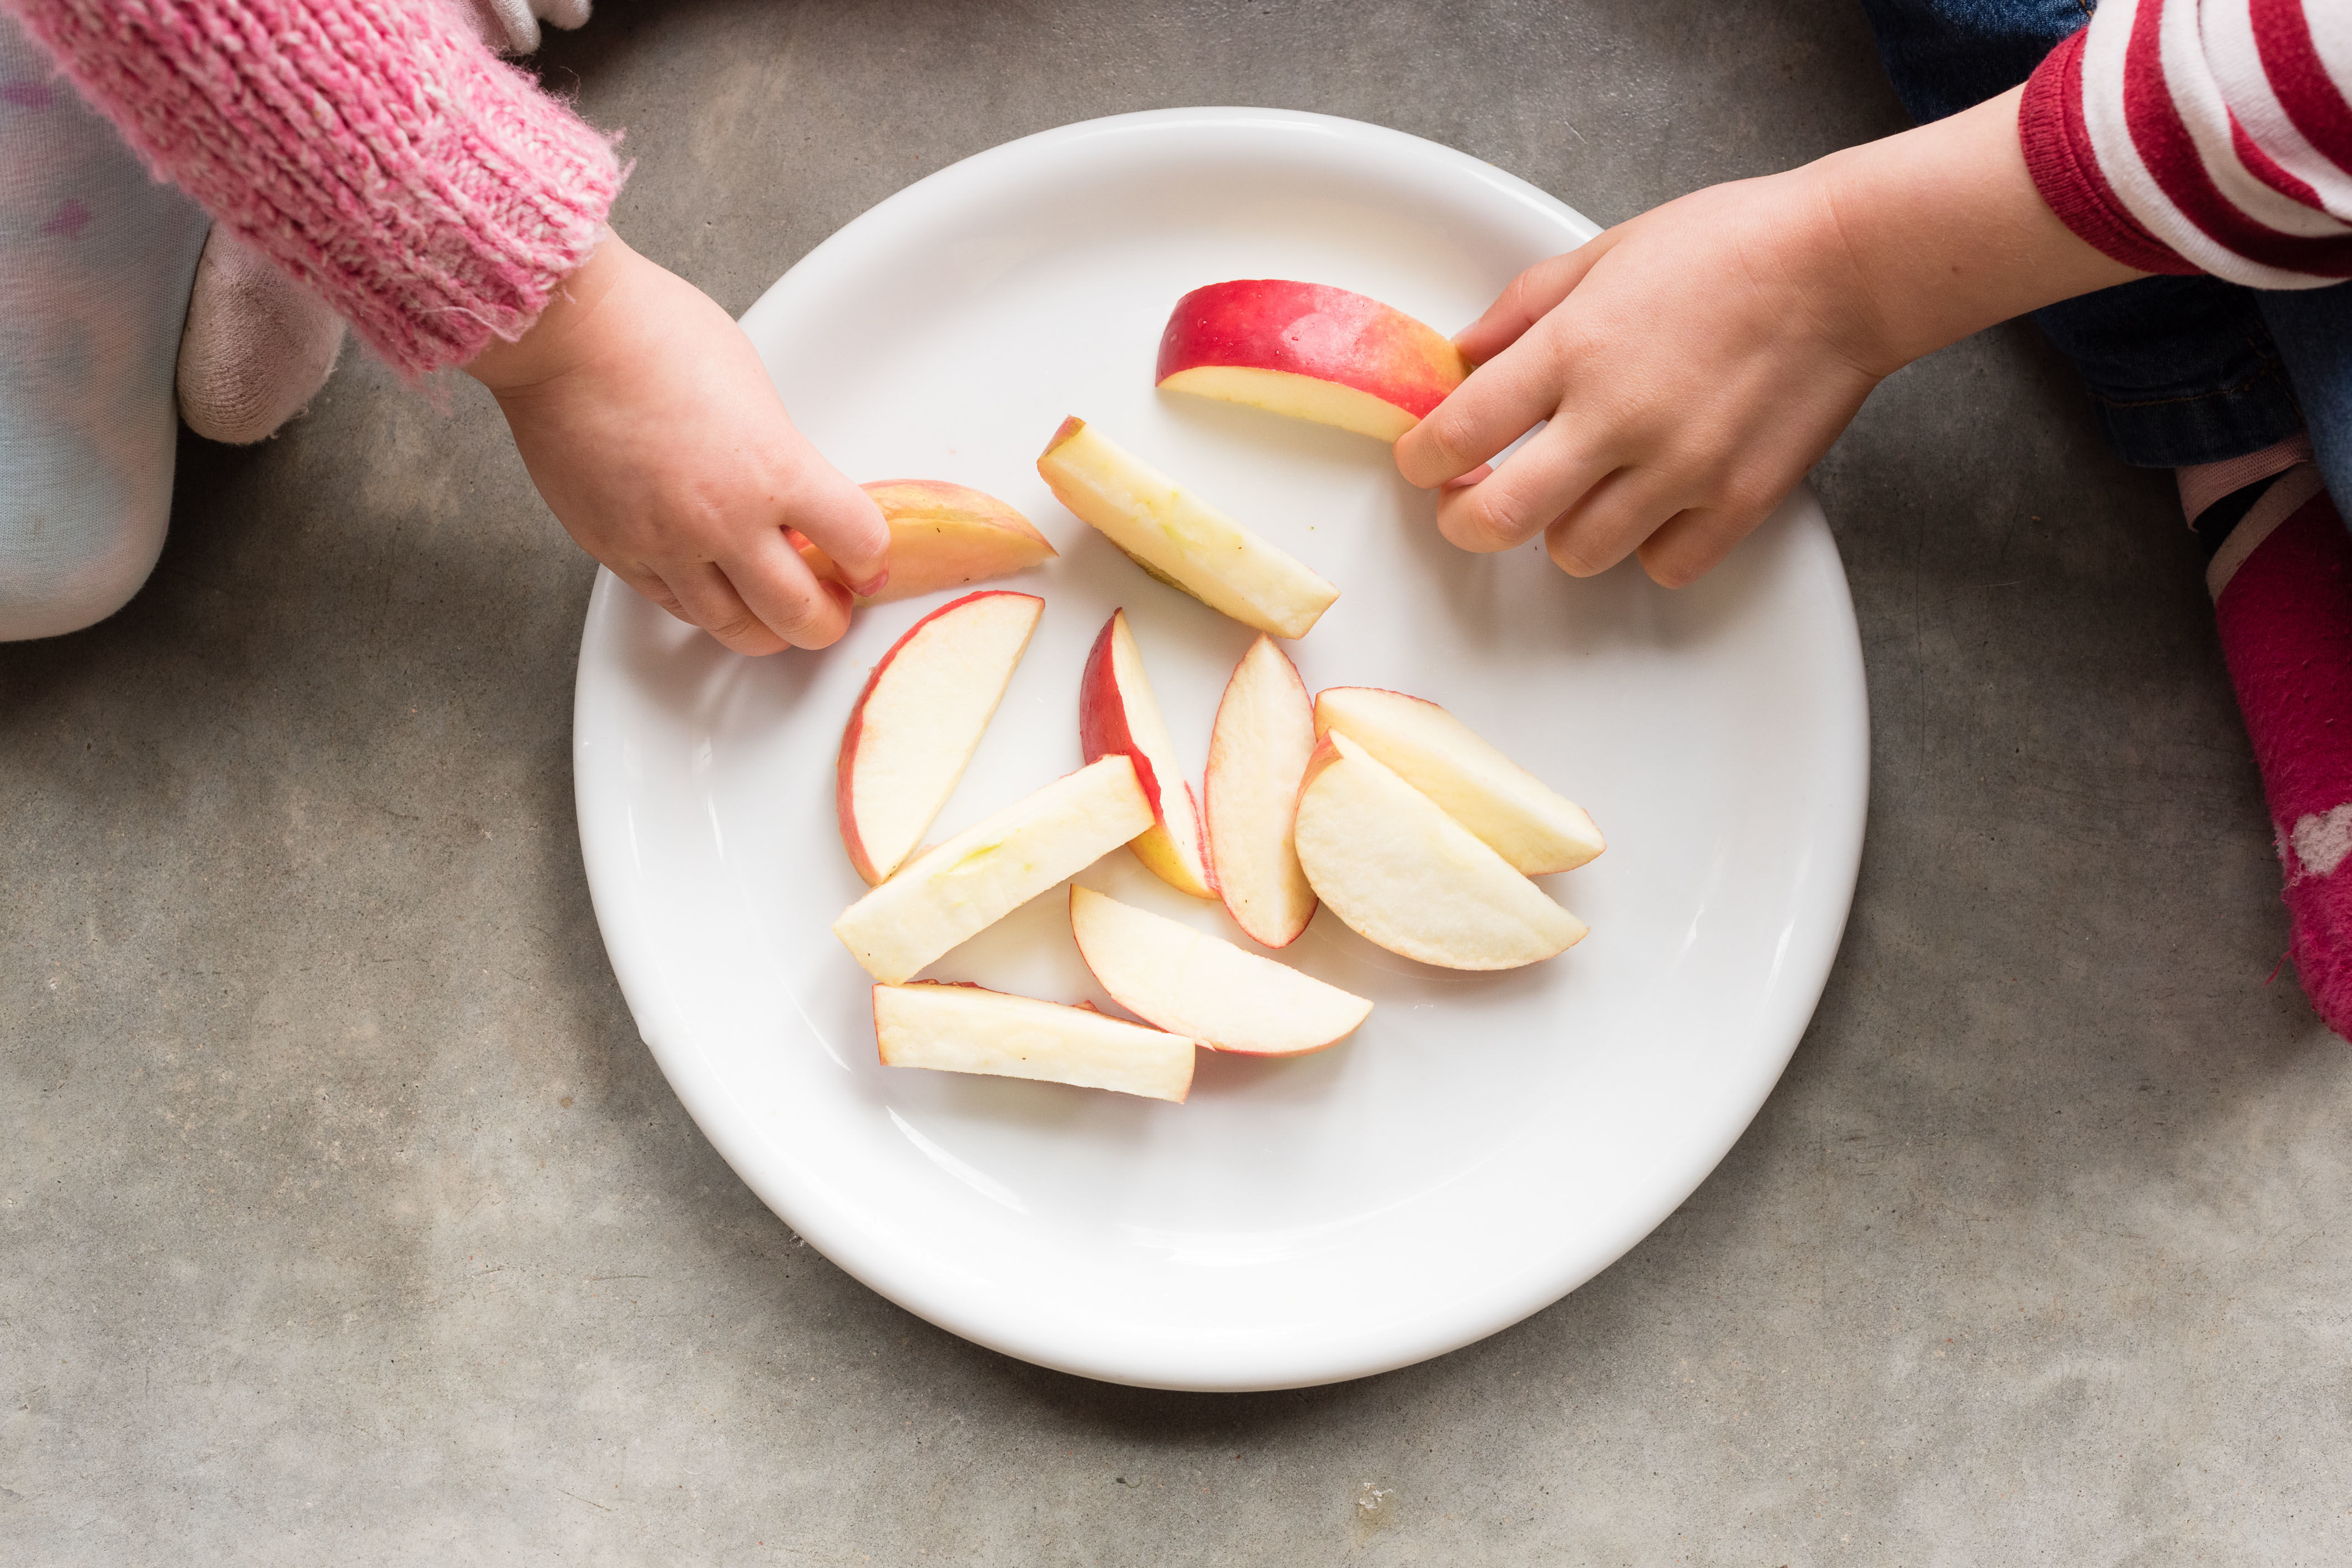 The Best Way to Keep Apples from Turning Brown